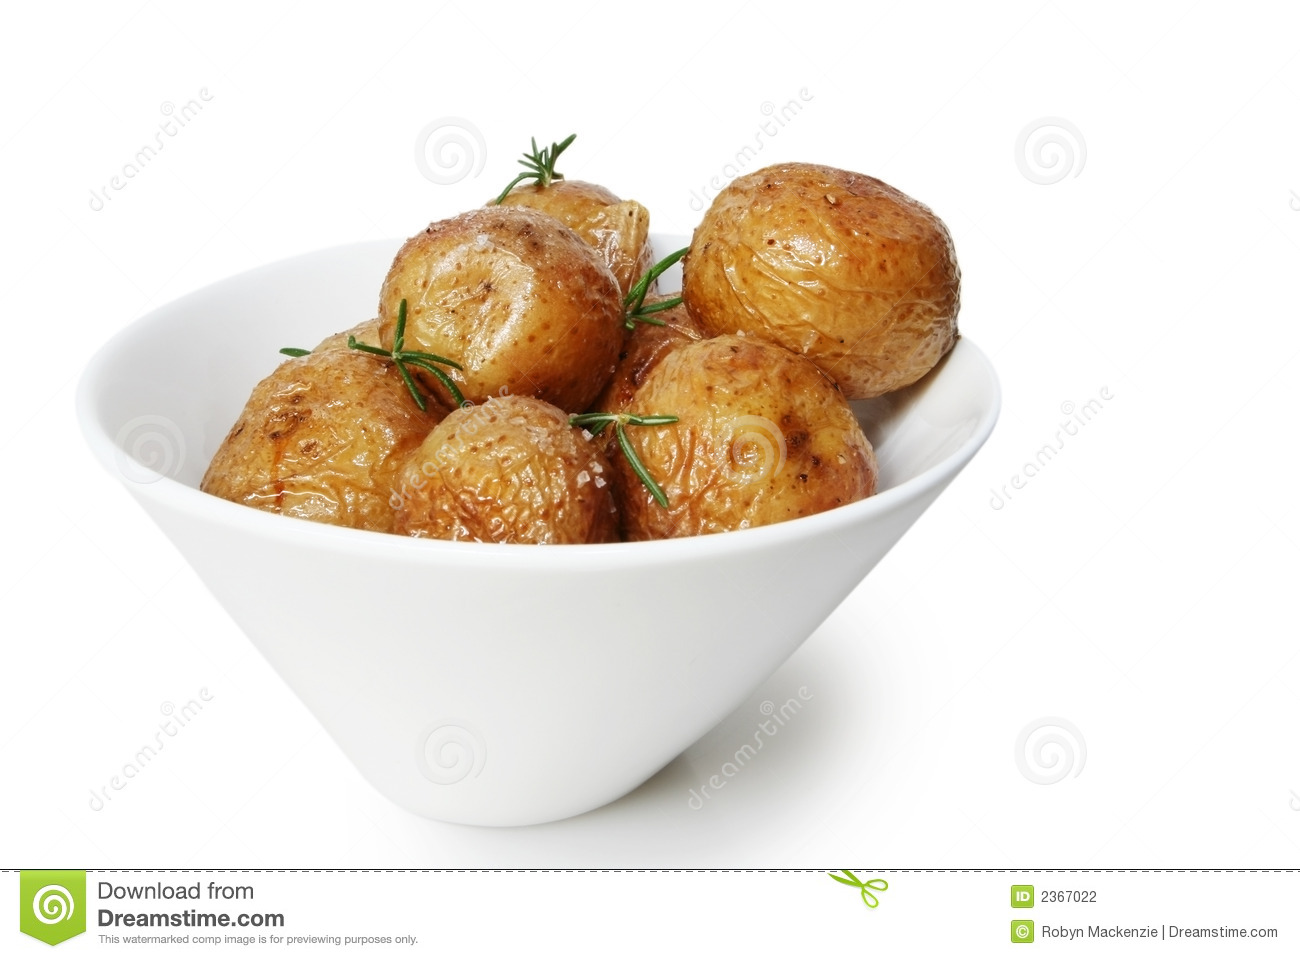 Salt roasted baby potatoes with rosemary, in a white bowl.